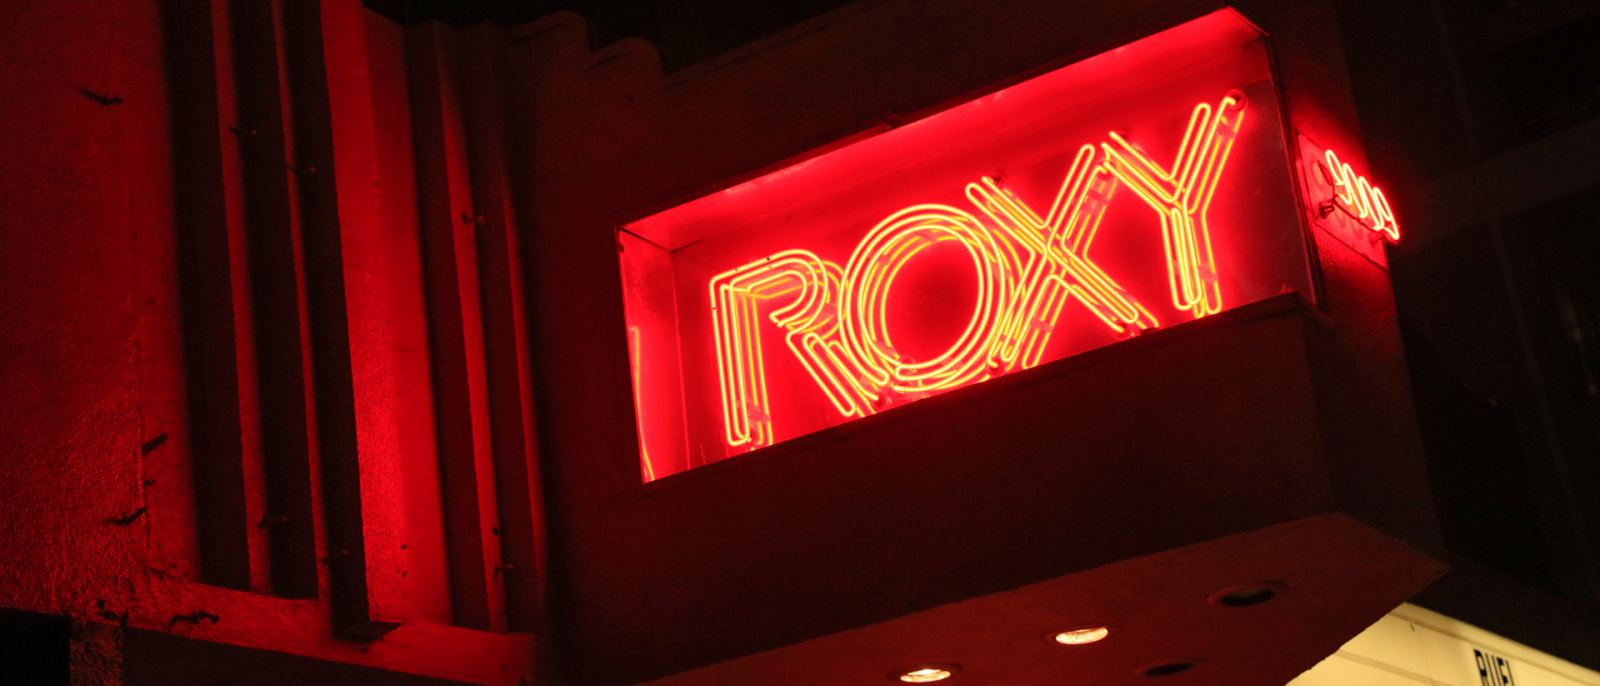 Neon sign at The Roxy